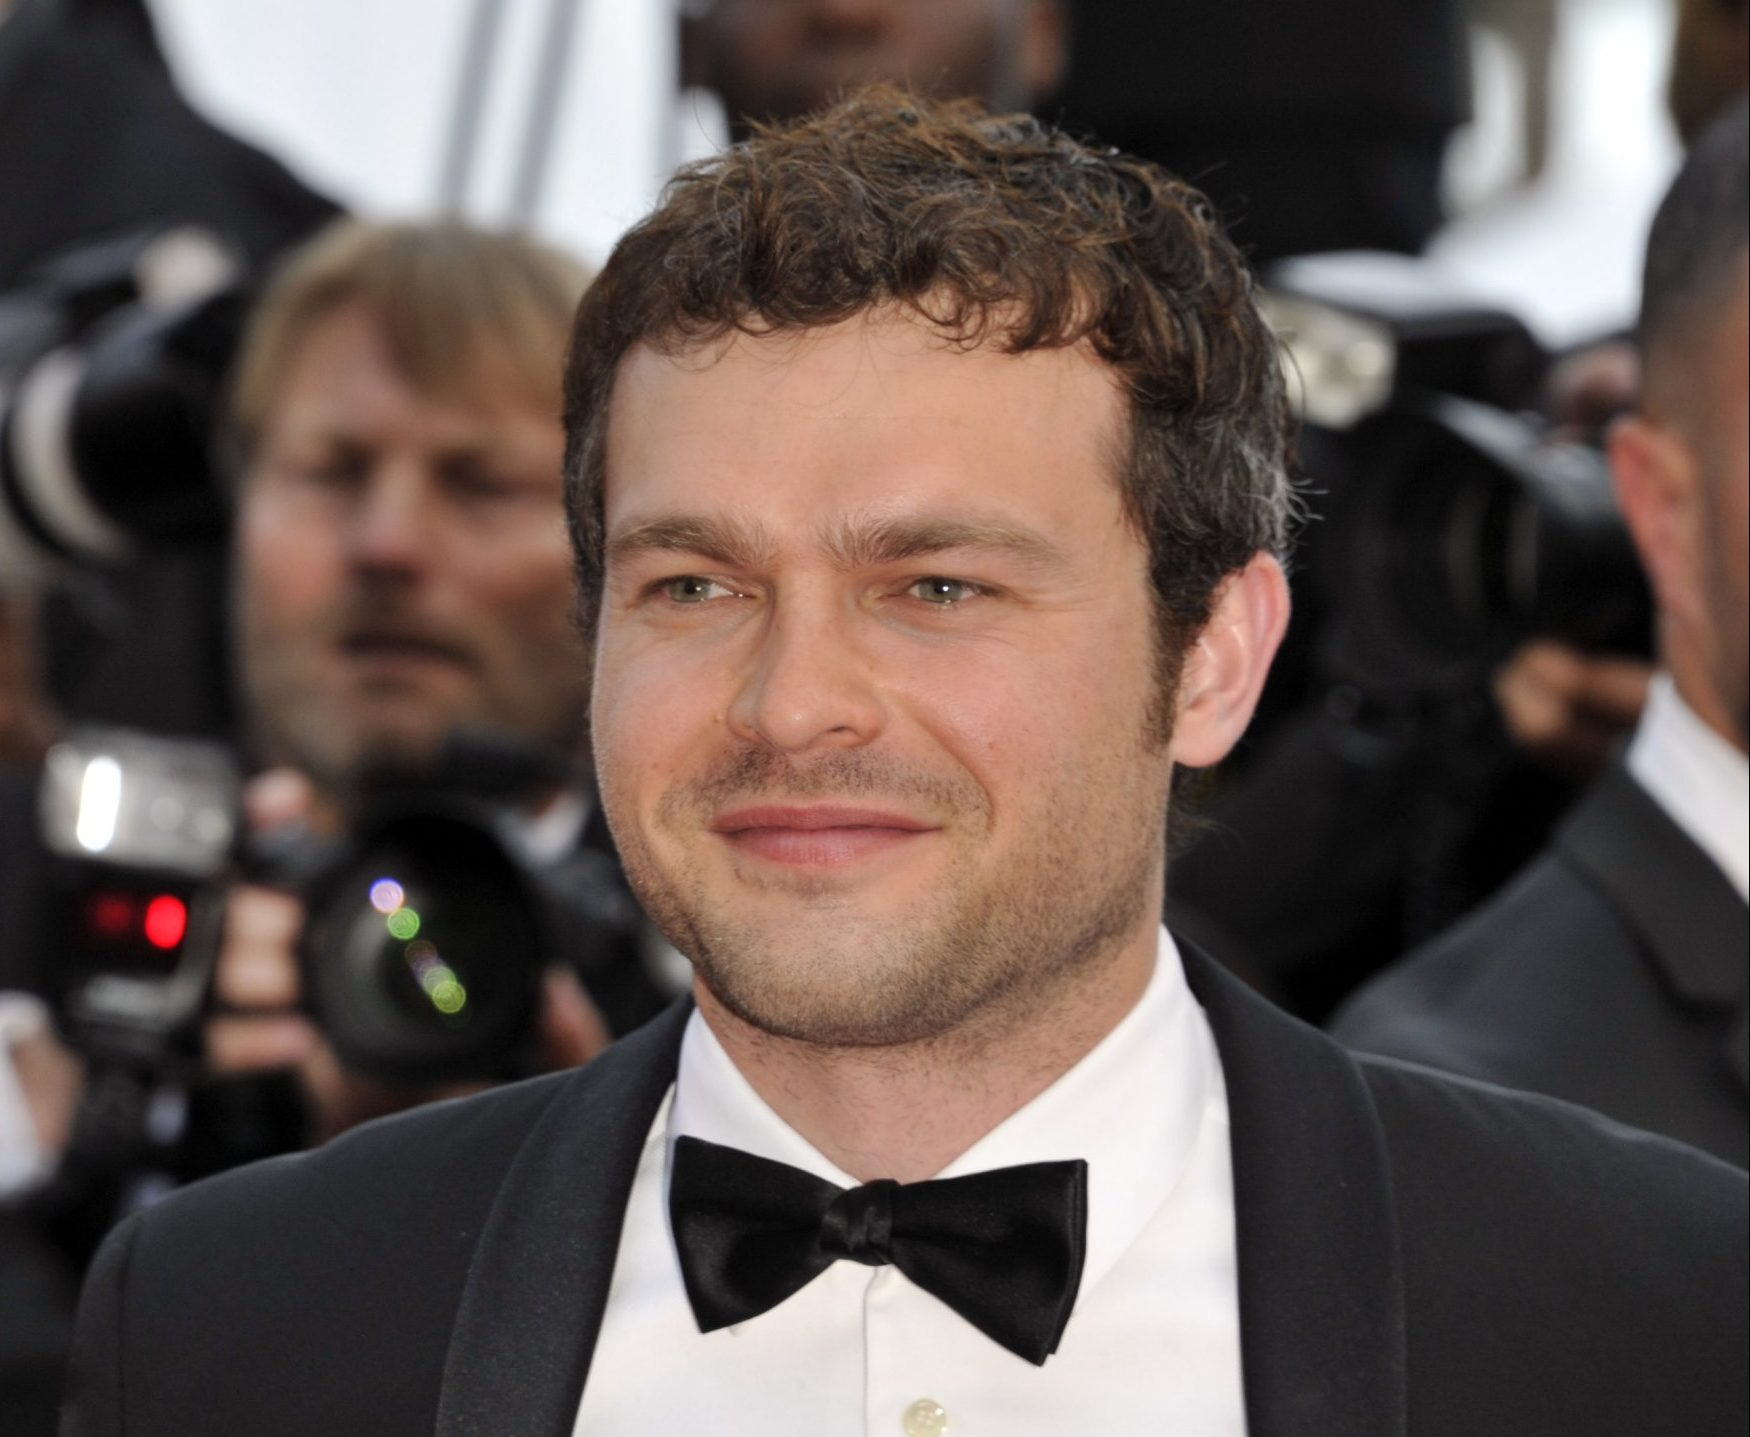 "71st Cannes Film Festival 2018, Red carpet film ""'Solo A Star Wars Story '"". 15 May 2018 Pictured: 71st Cannes Film Festival 2018, Red carpet film ""'Solo A Star Wars Story '"" Alden Ehrenreich. Photo credit: Pongo / MEGA TheMegaAgency.com +1 888 505 6342"